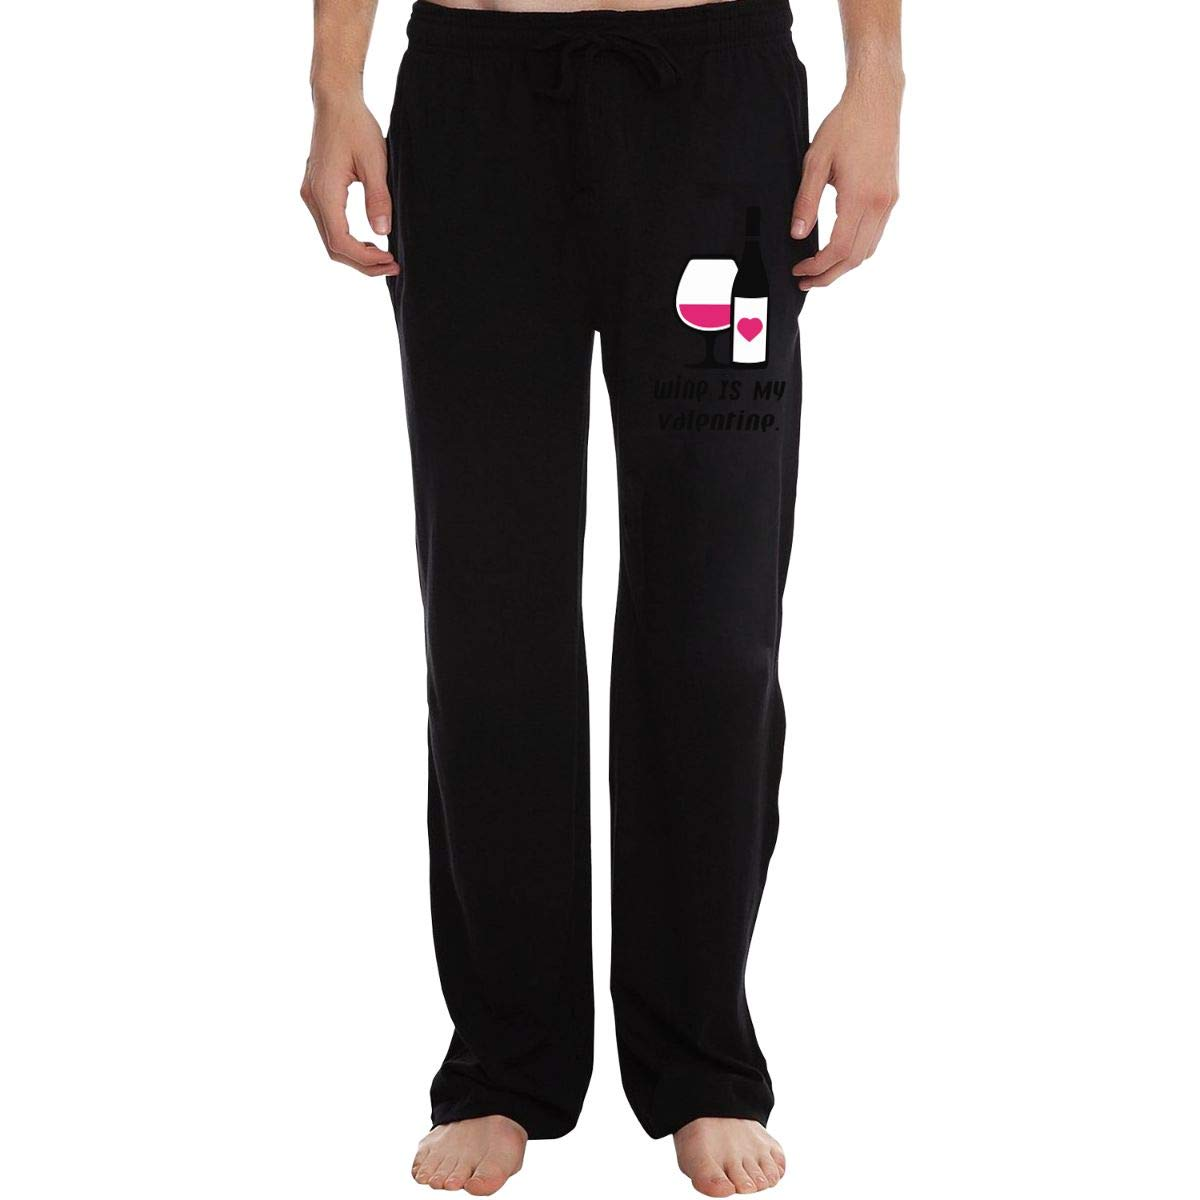 KWZ44 Wine is My Valentine Mens Sweatpants Extra Long CottonSleep Pants for Mans